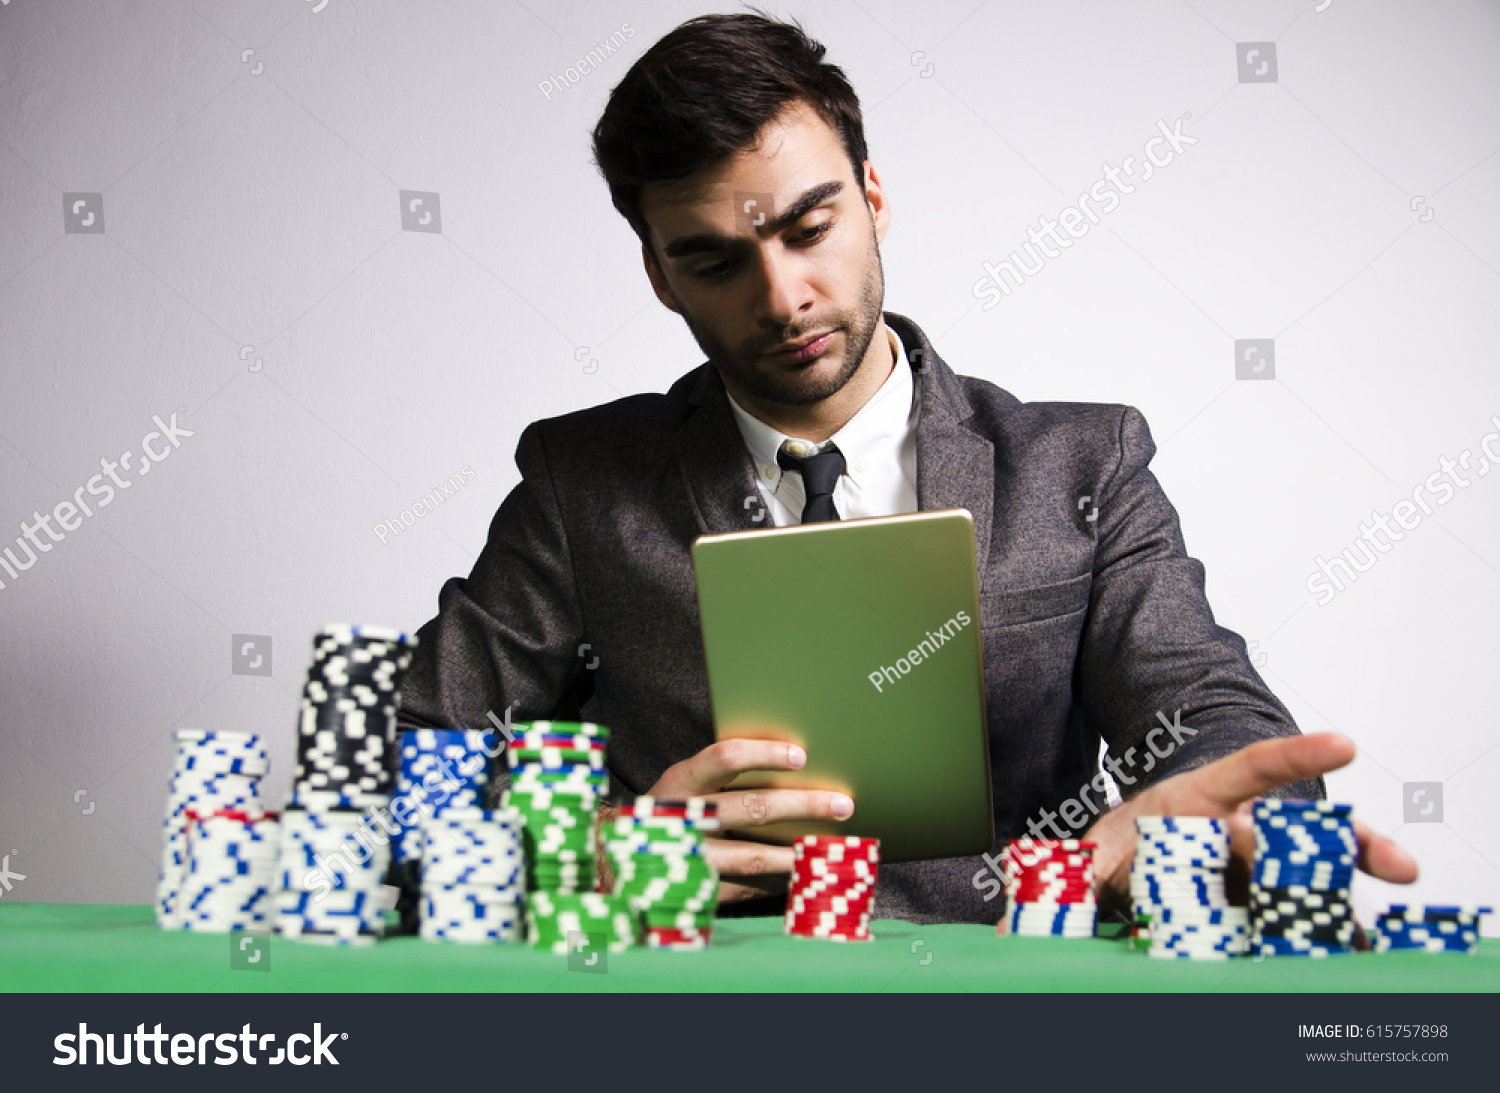 Serious Professional Online Poker Player Stock Photo Edit Now 615757898